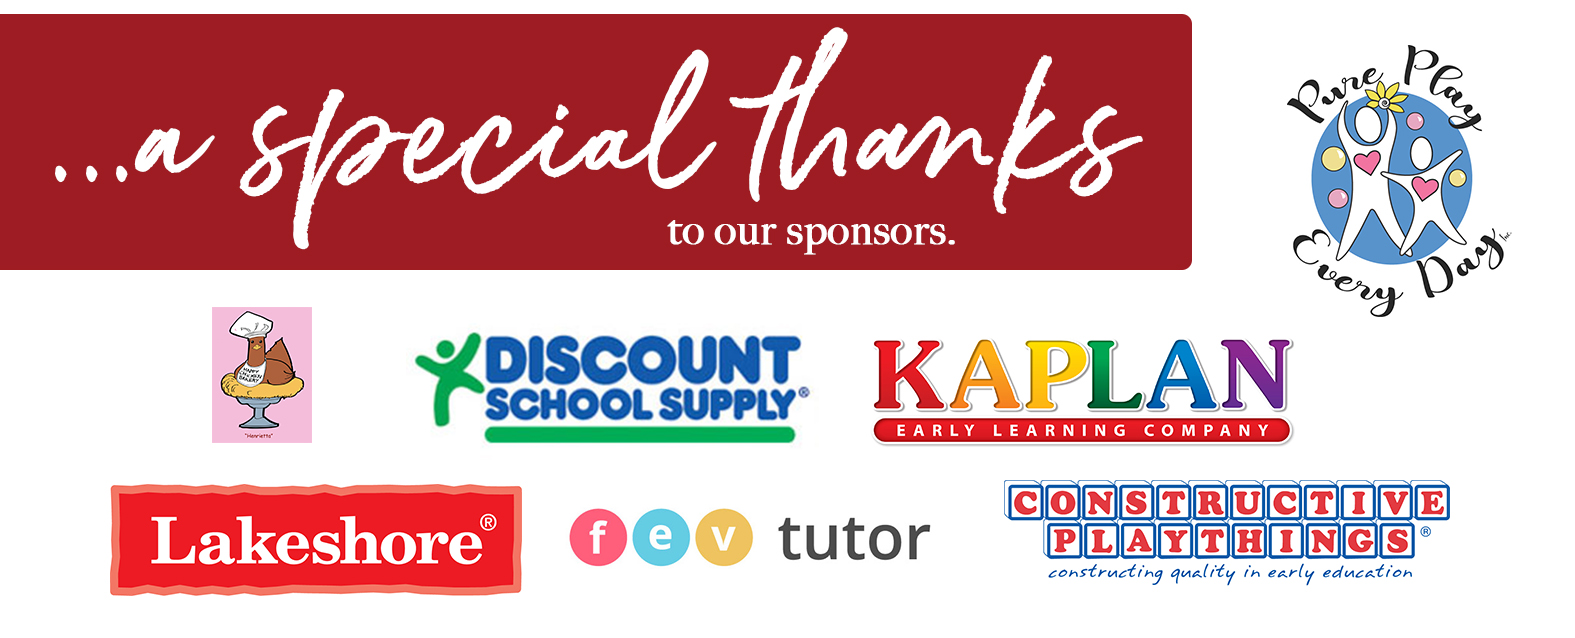 A special thanks to our sponsors: Pure Play Every Day, Discount School Supply, Lakeshore, FEV Tutor, Constructive Playthings, Kaplan Early Learning Company